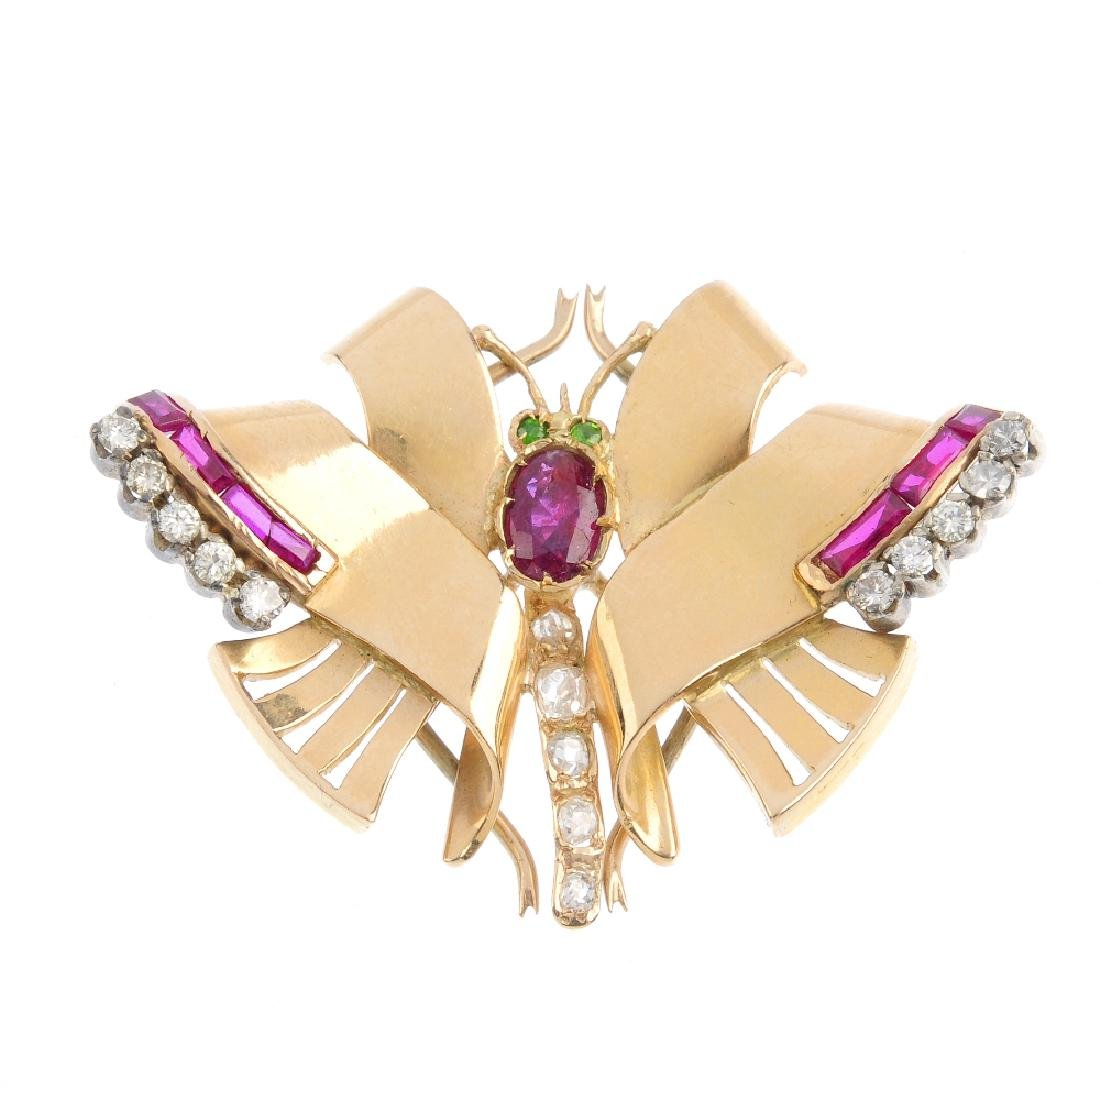 A mid 20th century gem-set butterfly brooch. The ruby